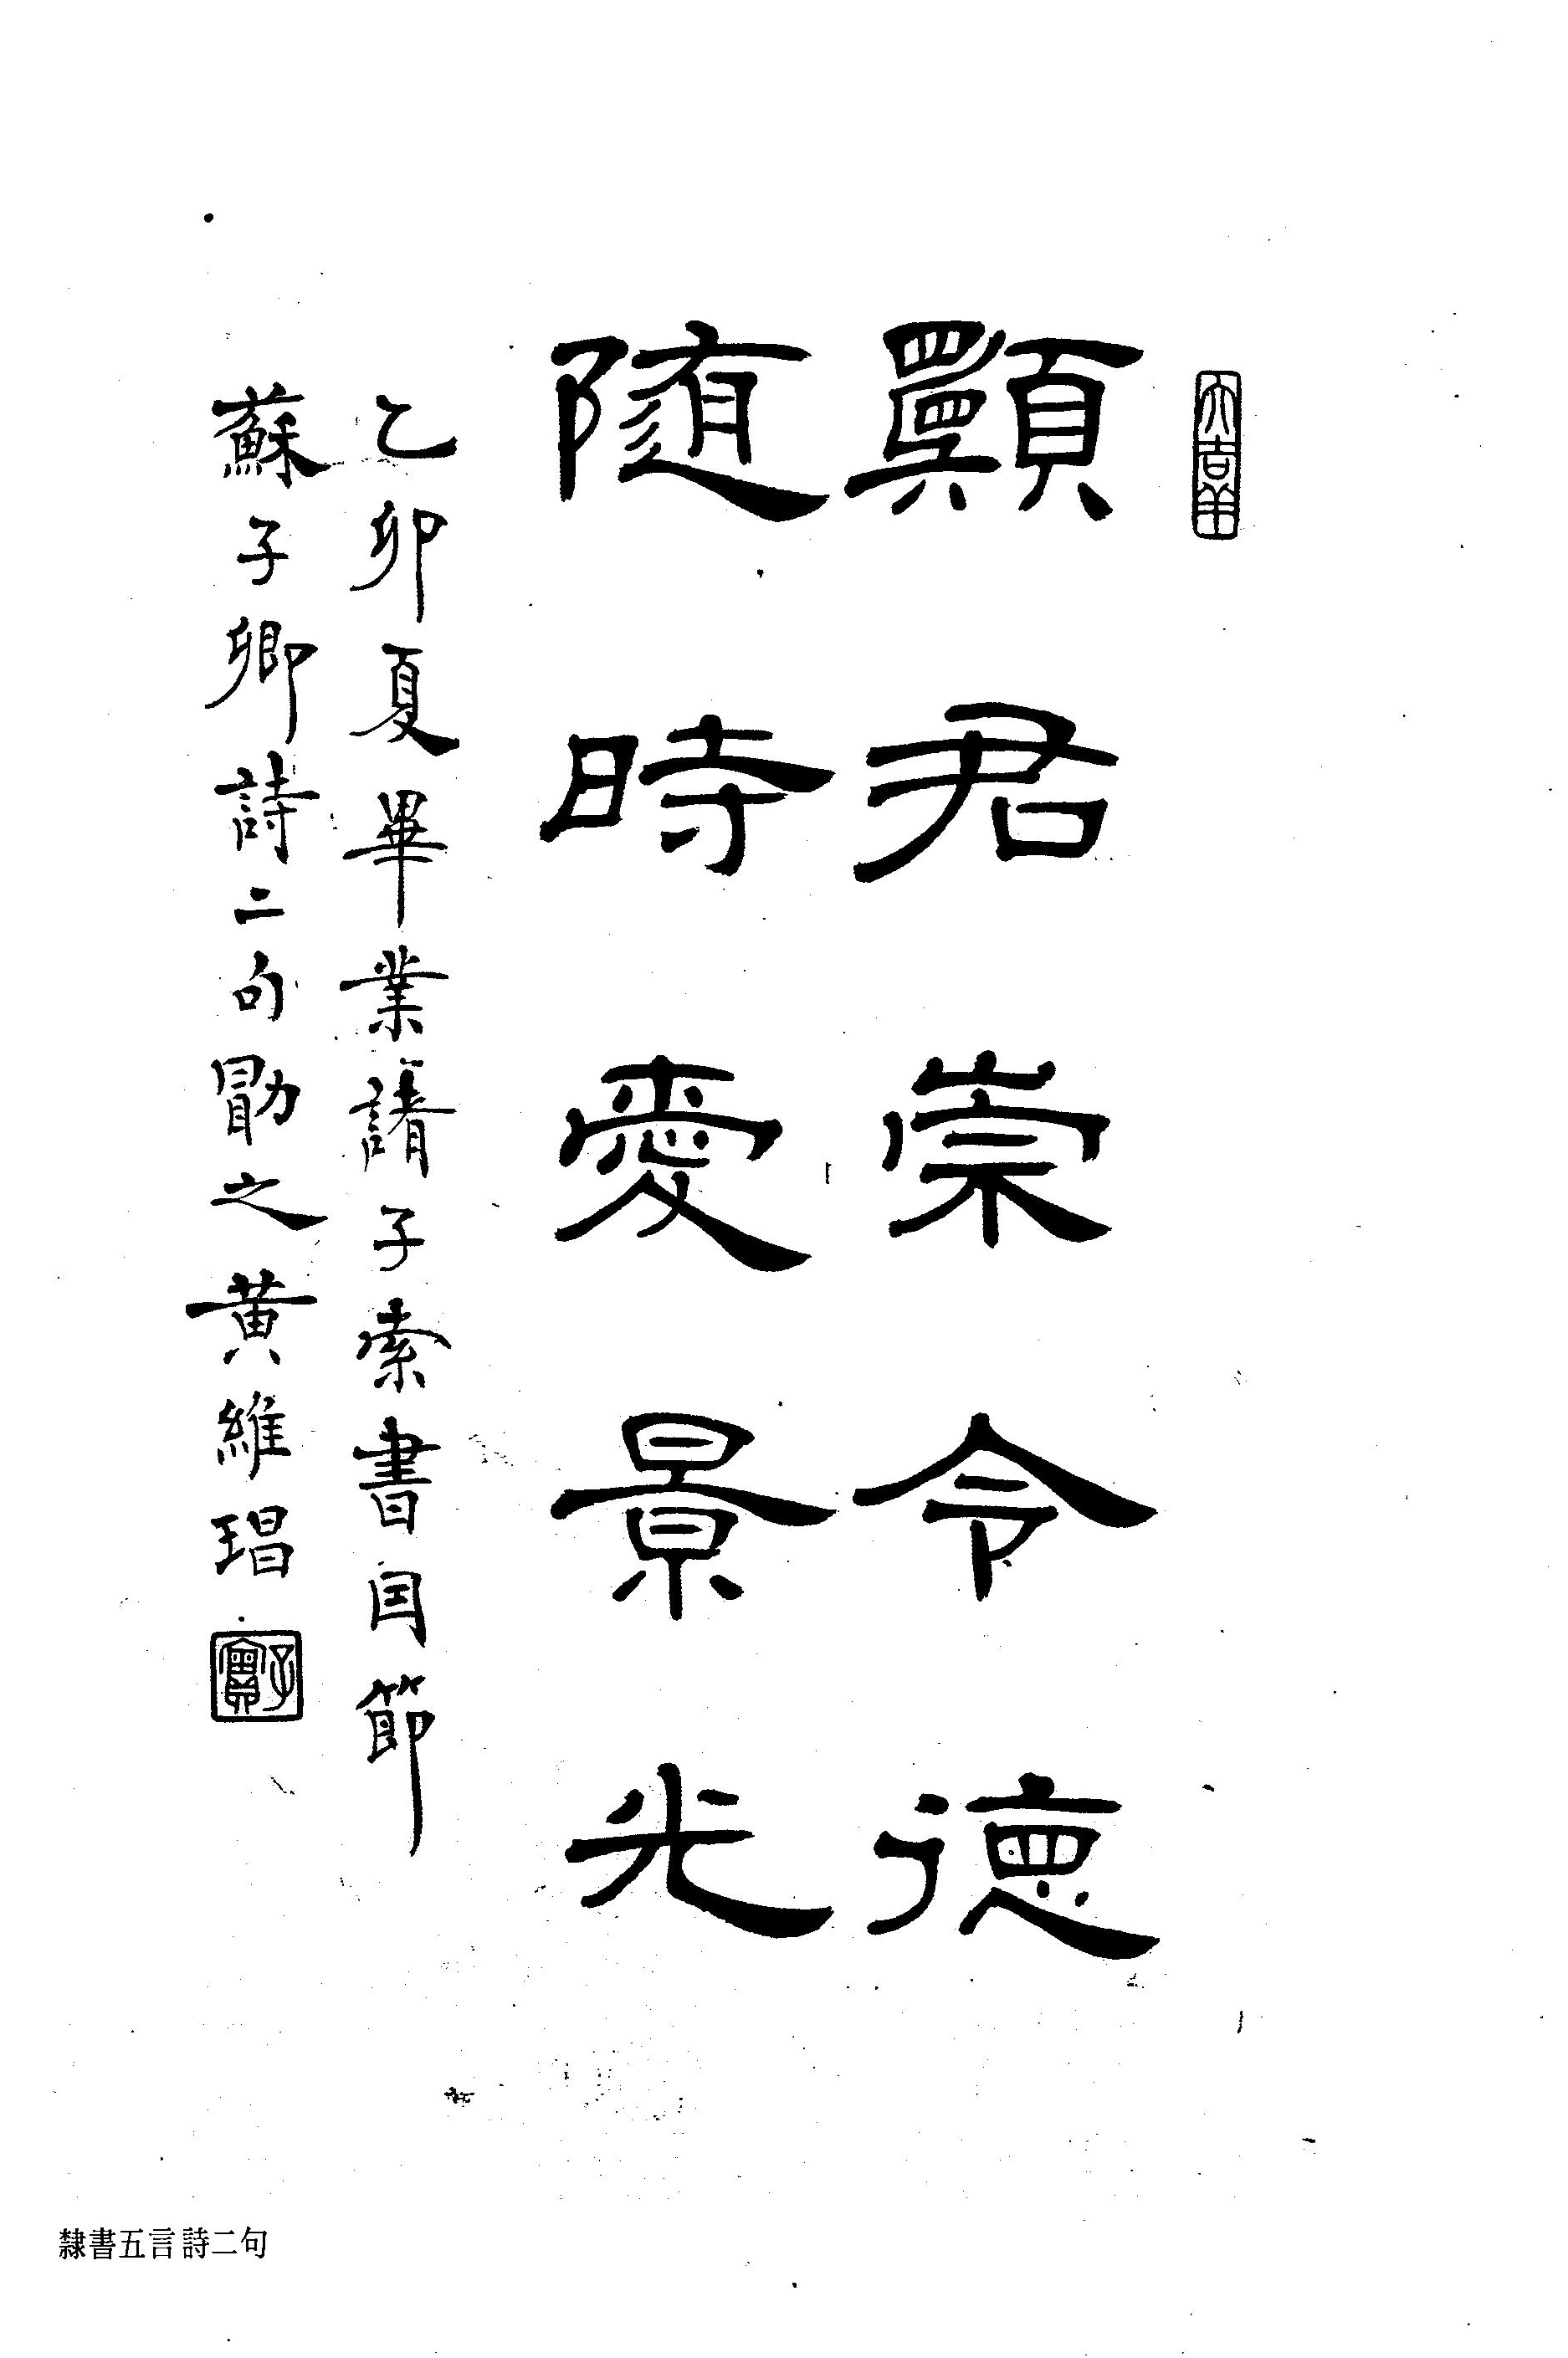 Studies of the Calligraphy of Professor WONG Wai Cheong